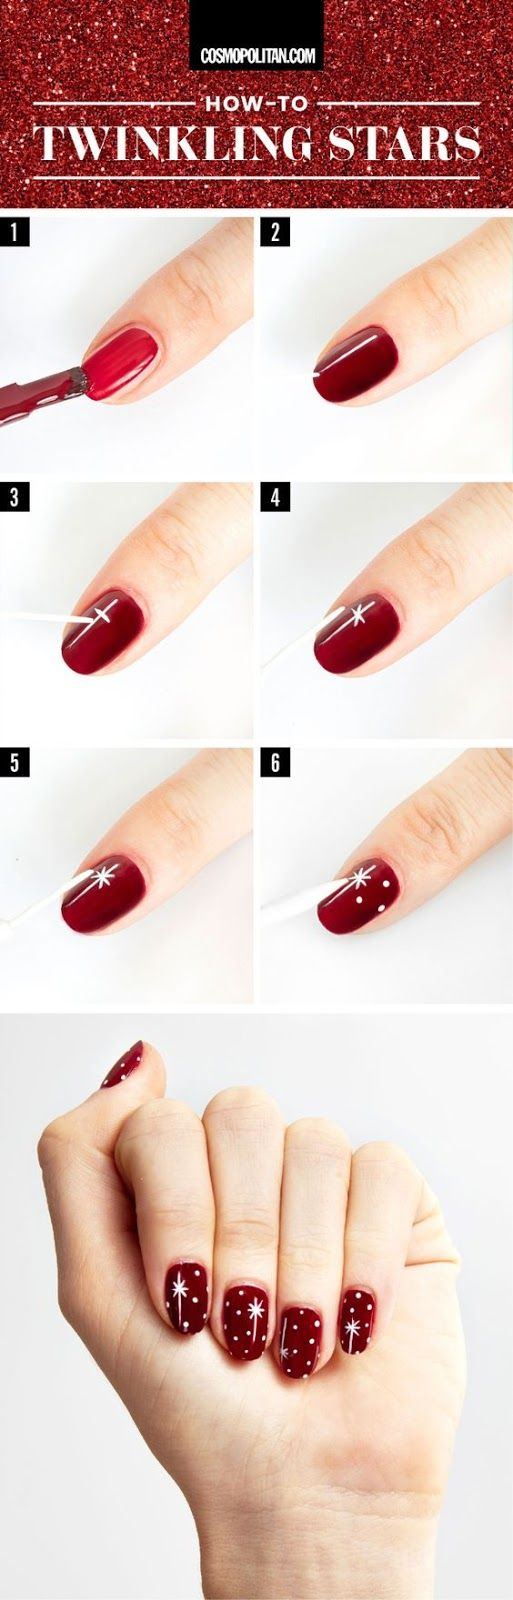 best nail art ideas images on pinterest perfect nails cute